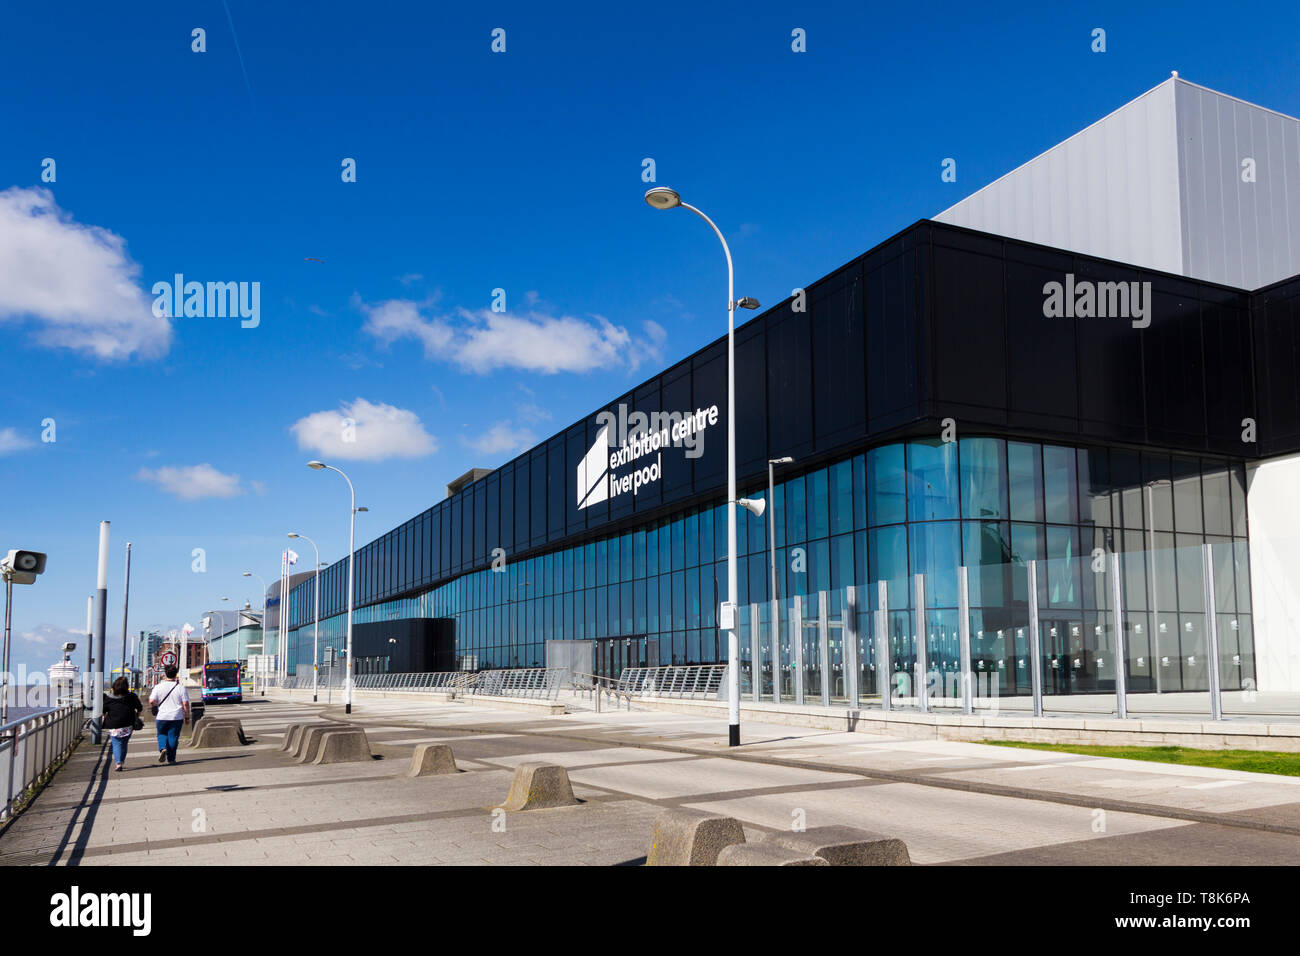 Liverpool Exhibition Centre, Kings Dock Liverpool waterfront,  part of The ACC Liverpool Group, with sister venues BT Convention Centre and M&S Arena - Stock Image